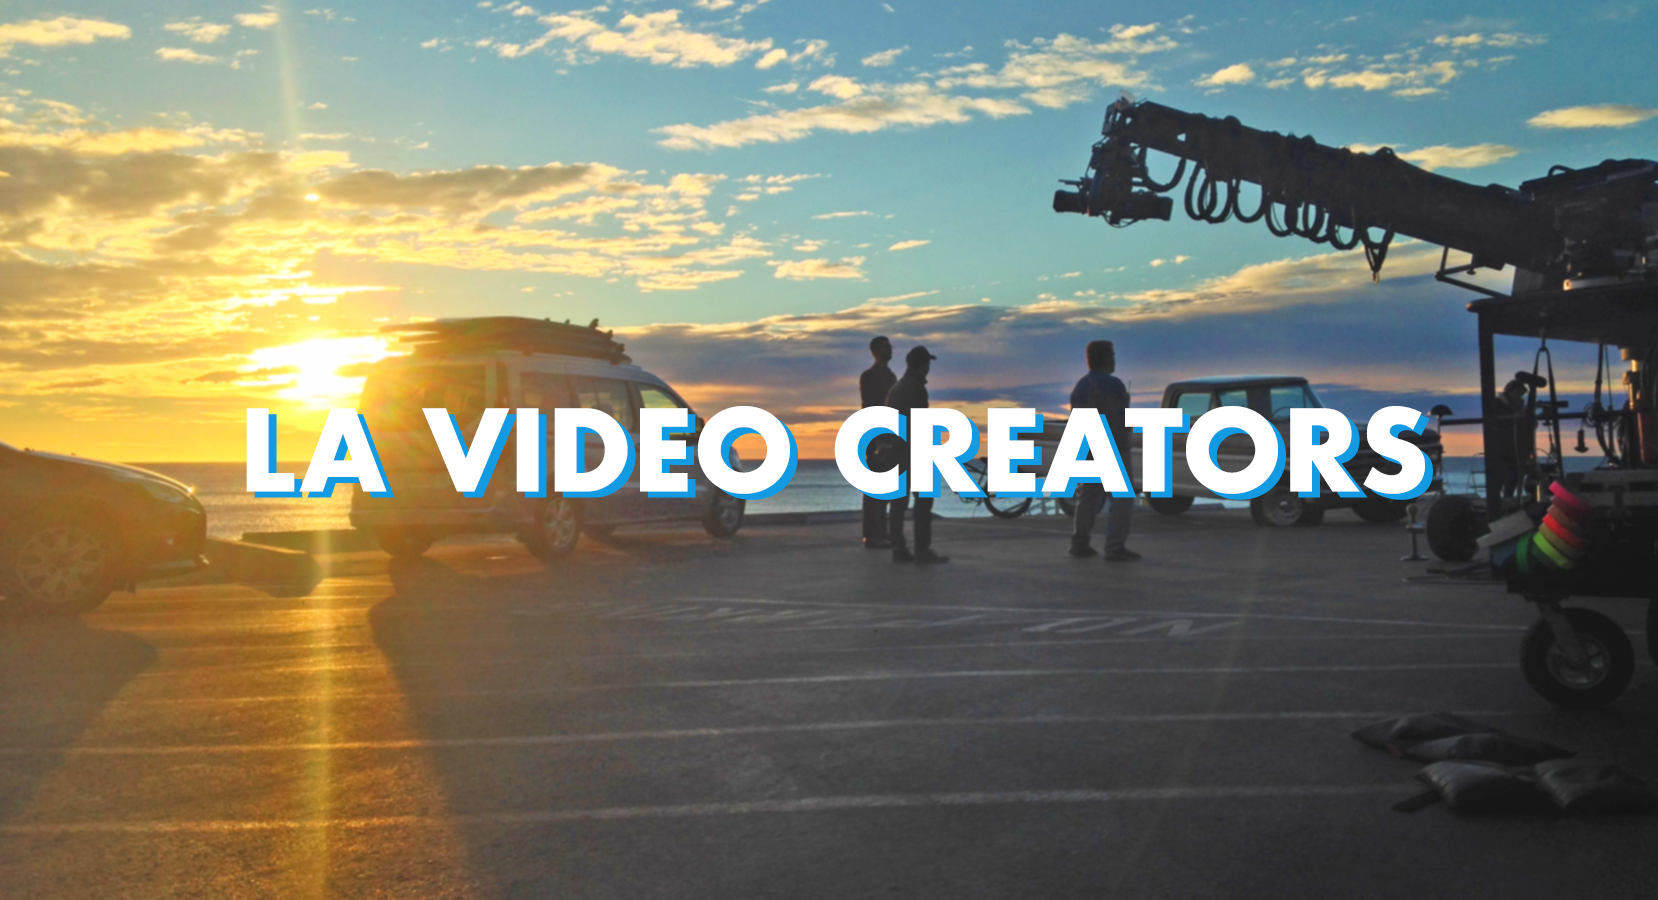 LA Video Creators - This group is for you if you:* Live in or around the Los Angeles county (socal is accepted)* Create video content* Focus on online video content* Want a supportive community of creativesRequest To Join